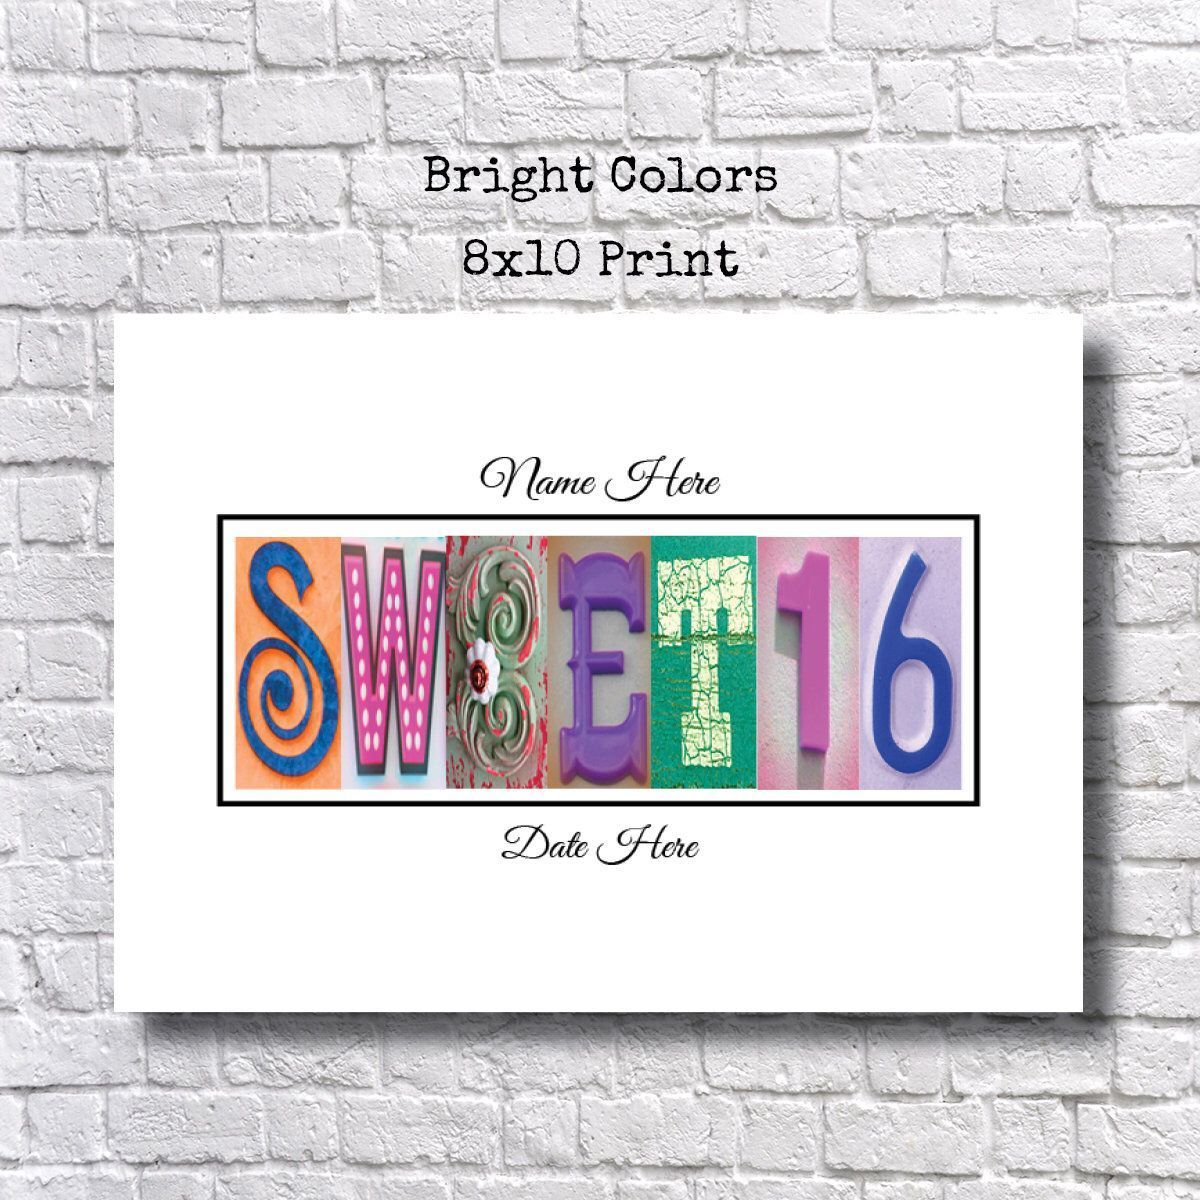 Sweet 16 Photo Props, Sweet 16 Gifts, 16 Centerpiece, Sweet 16 Gift, Sweet 16 Party Favors, Sweet 16 Decoration, Sweet 16 Guest Book #sweet16centerpieces Excited to share this item from my #etsy shop: Sweet 16 Photo Props, Sweet 16 Gifts, 16 Centerpiece, Sweet 16 Gift, Sweet 16 Party Favors, Sweet 16 Decoration, Sweet 16 Guest Book #sweet16centerpieces Sweet 16 Photo Props, Sweet 16 Gifts, 16 Centerpiece, Sweet 16 Gift, Sweet 16 Party Favors, Sweet 16 Decoration, Sweet 16 Guest Book #sweet16cent #sweet16centerpieces